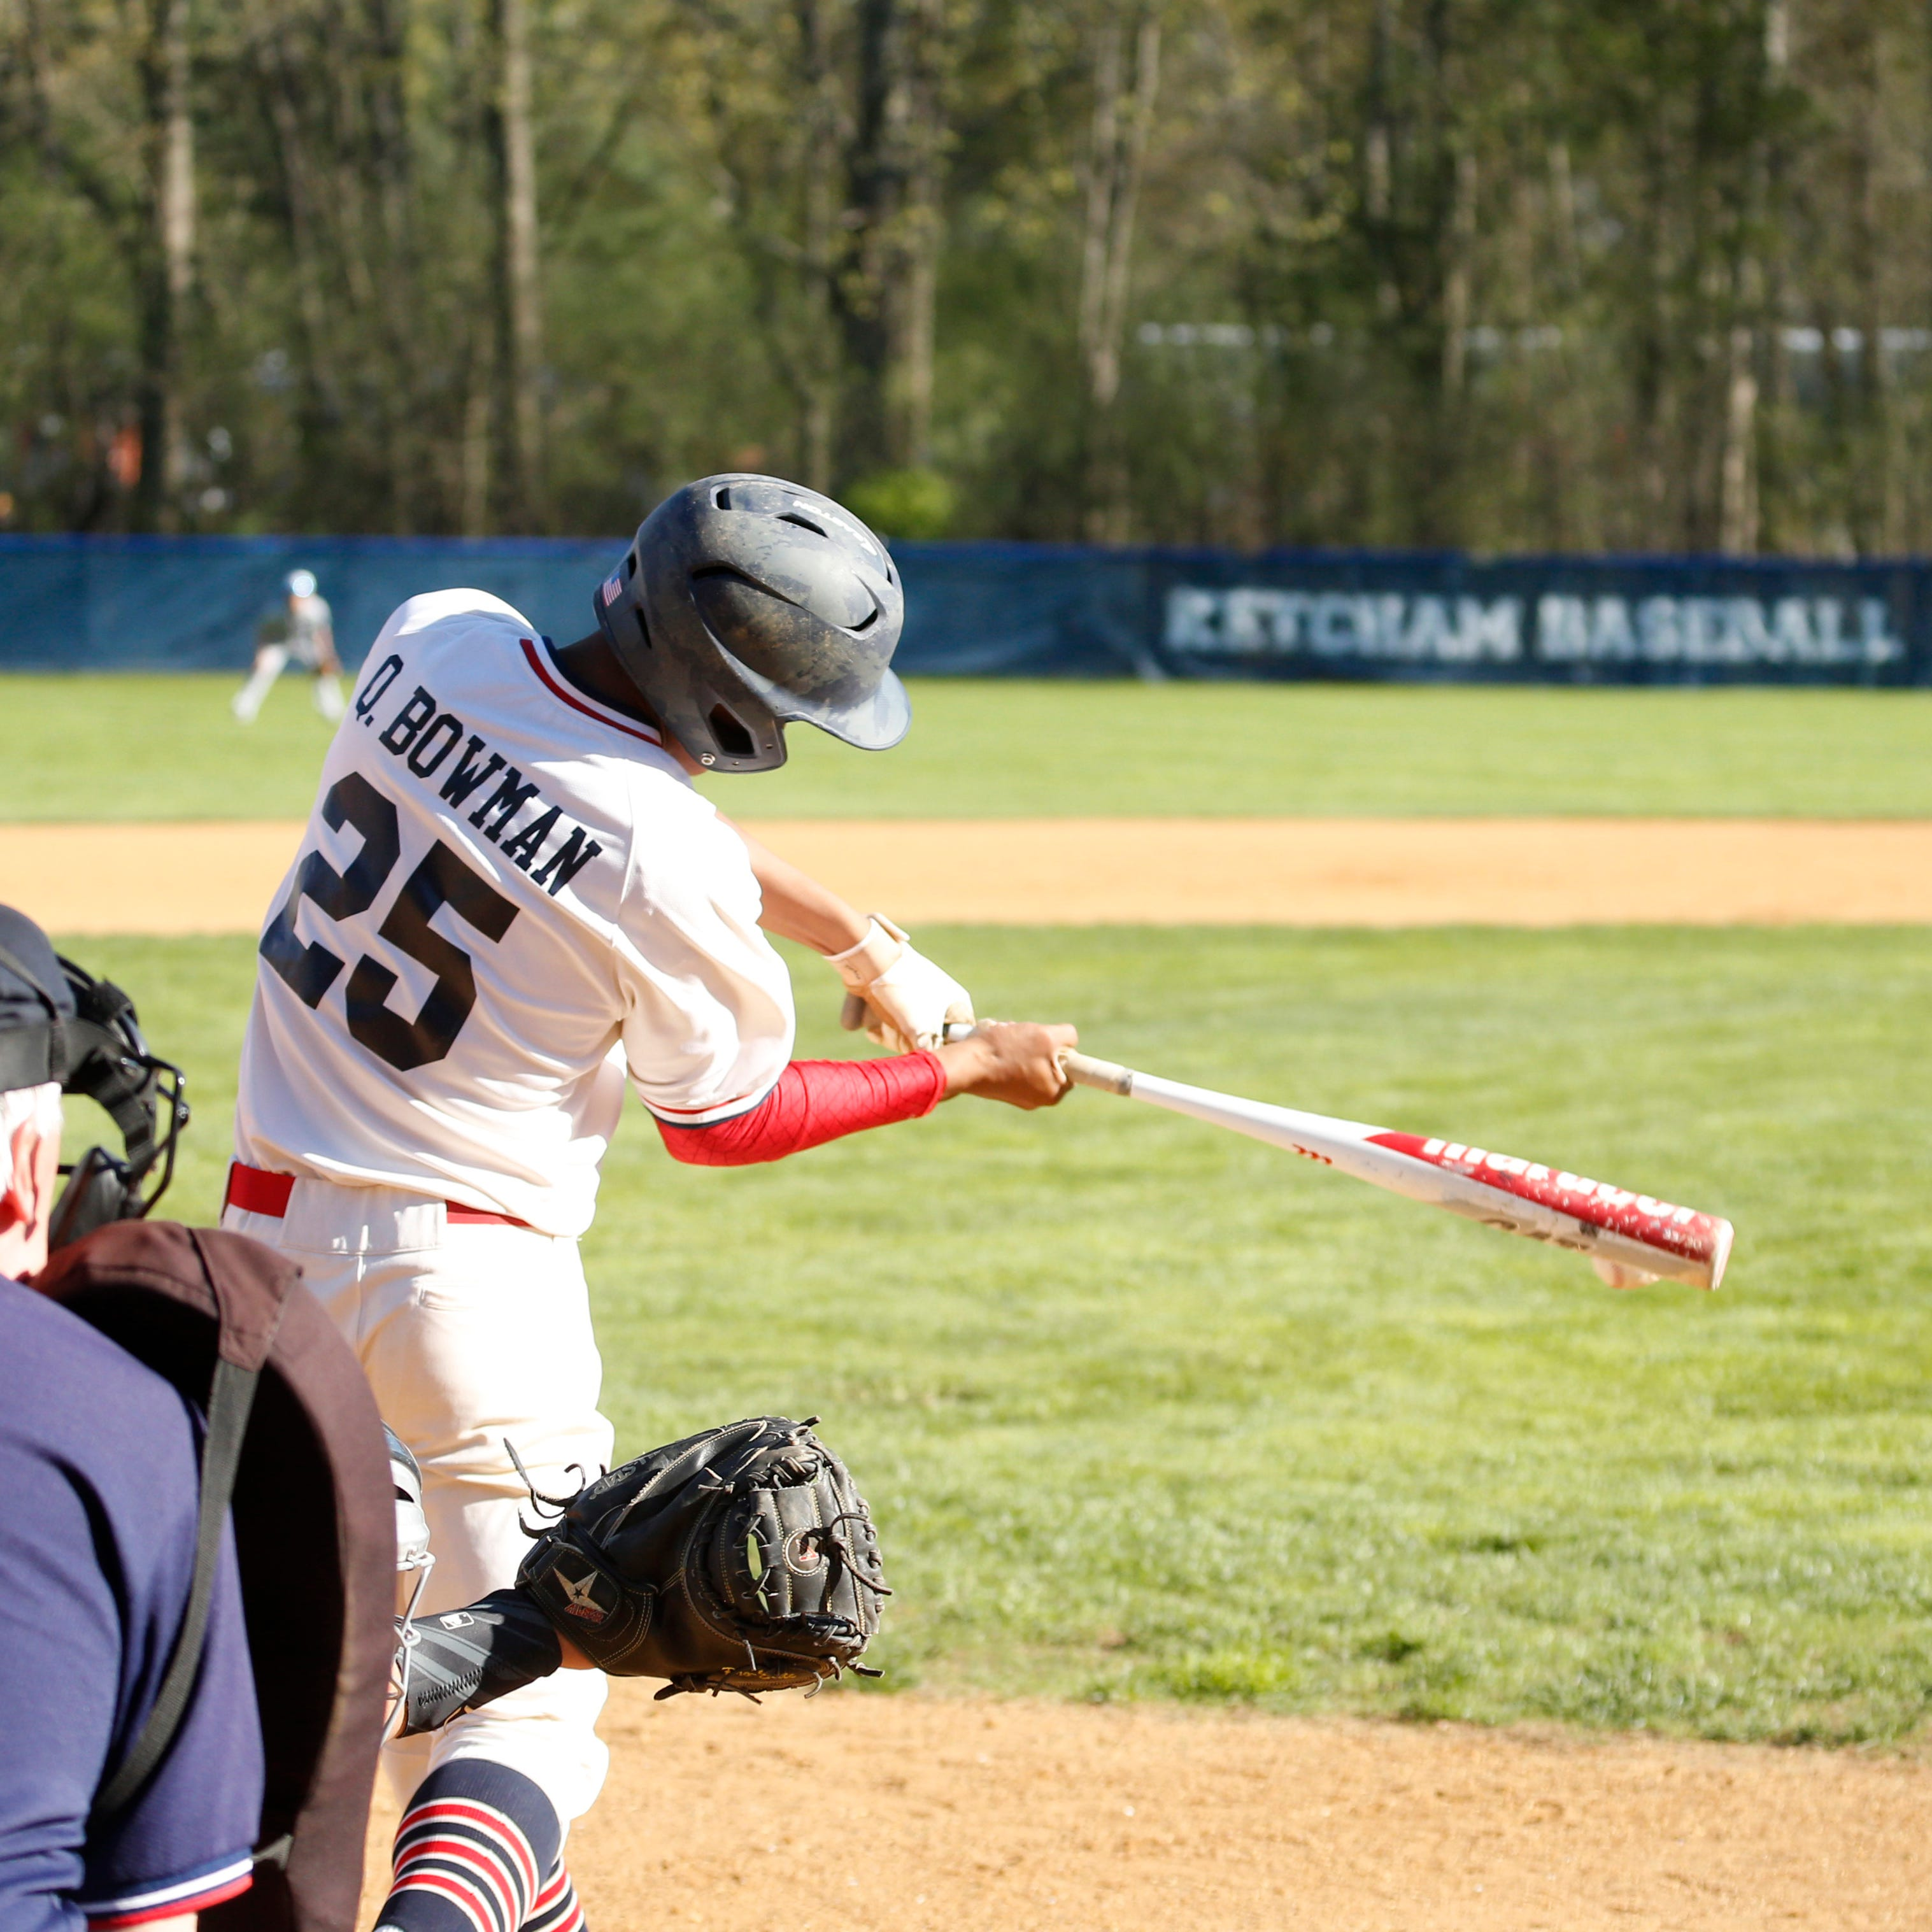 PoJo baseball rankings: Ketcham remains at the top as sectionals approach